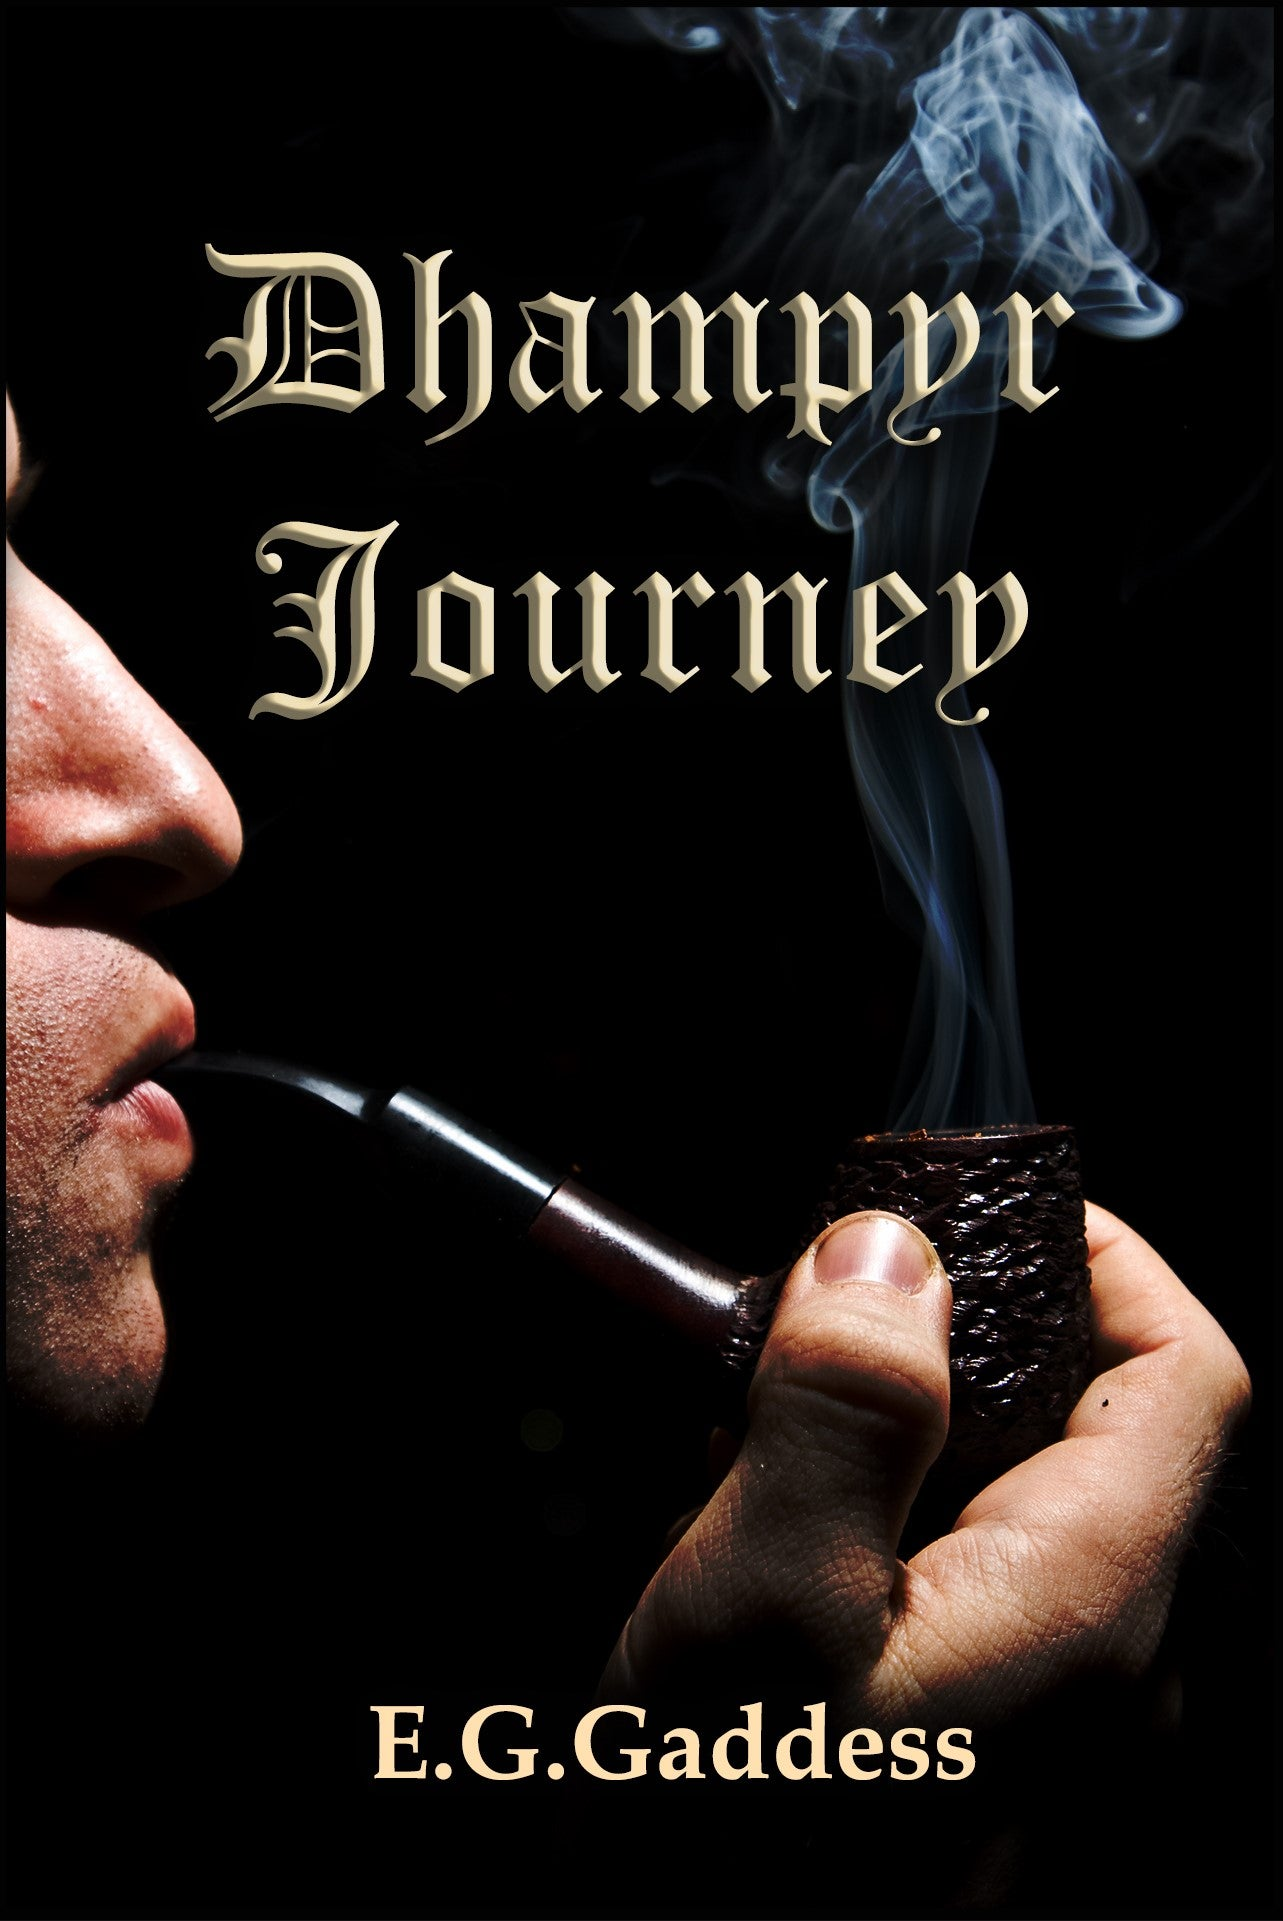 Dhampyr Journey - Trade Paperback